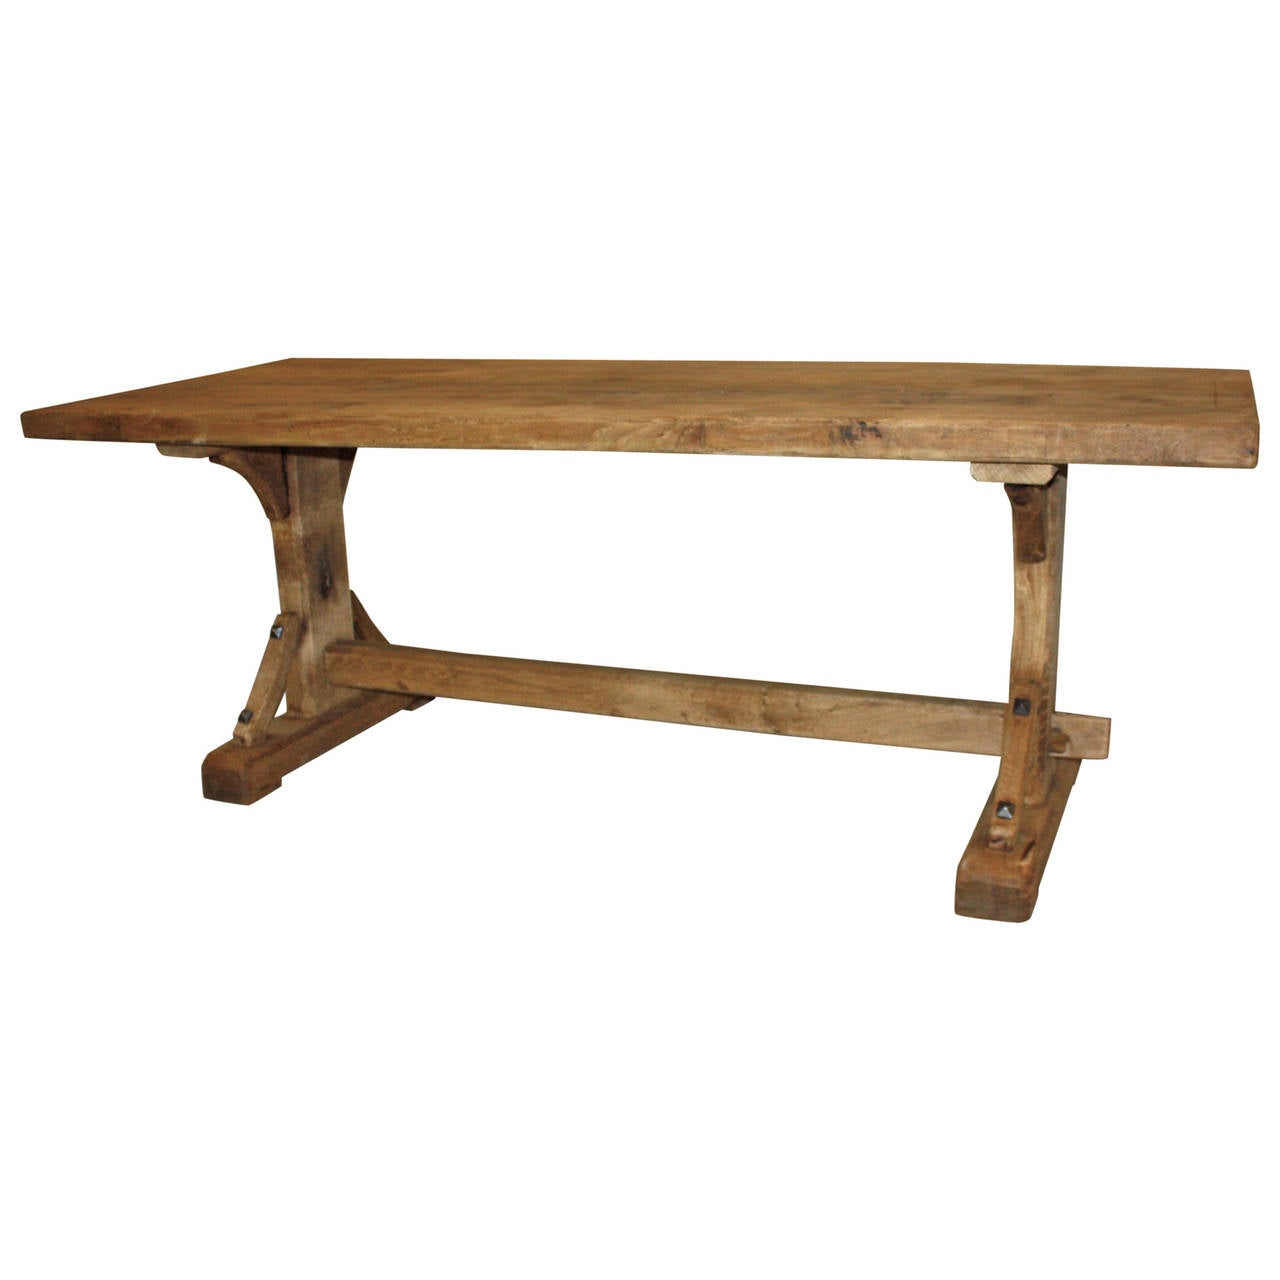 Th century french oak trestle table at stdibs